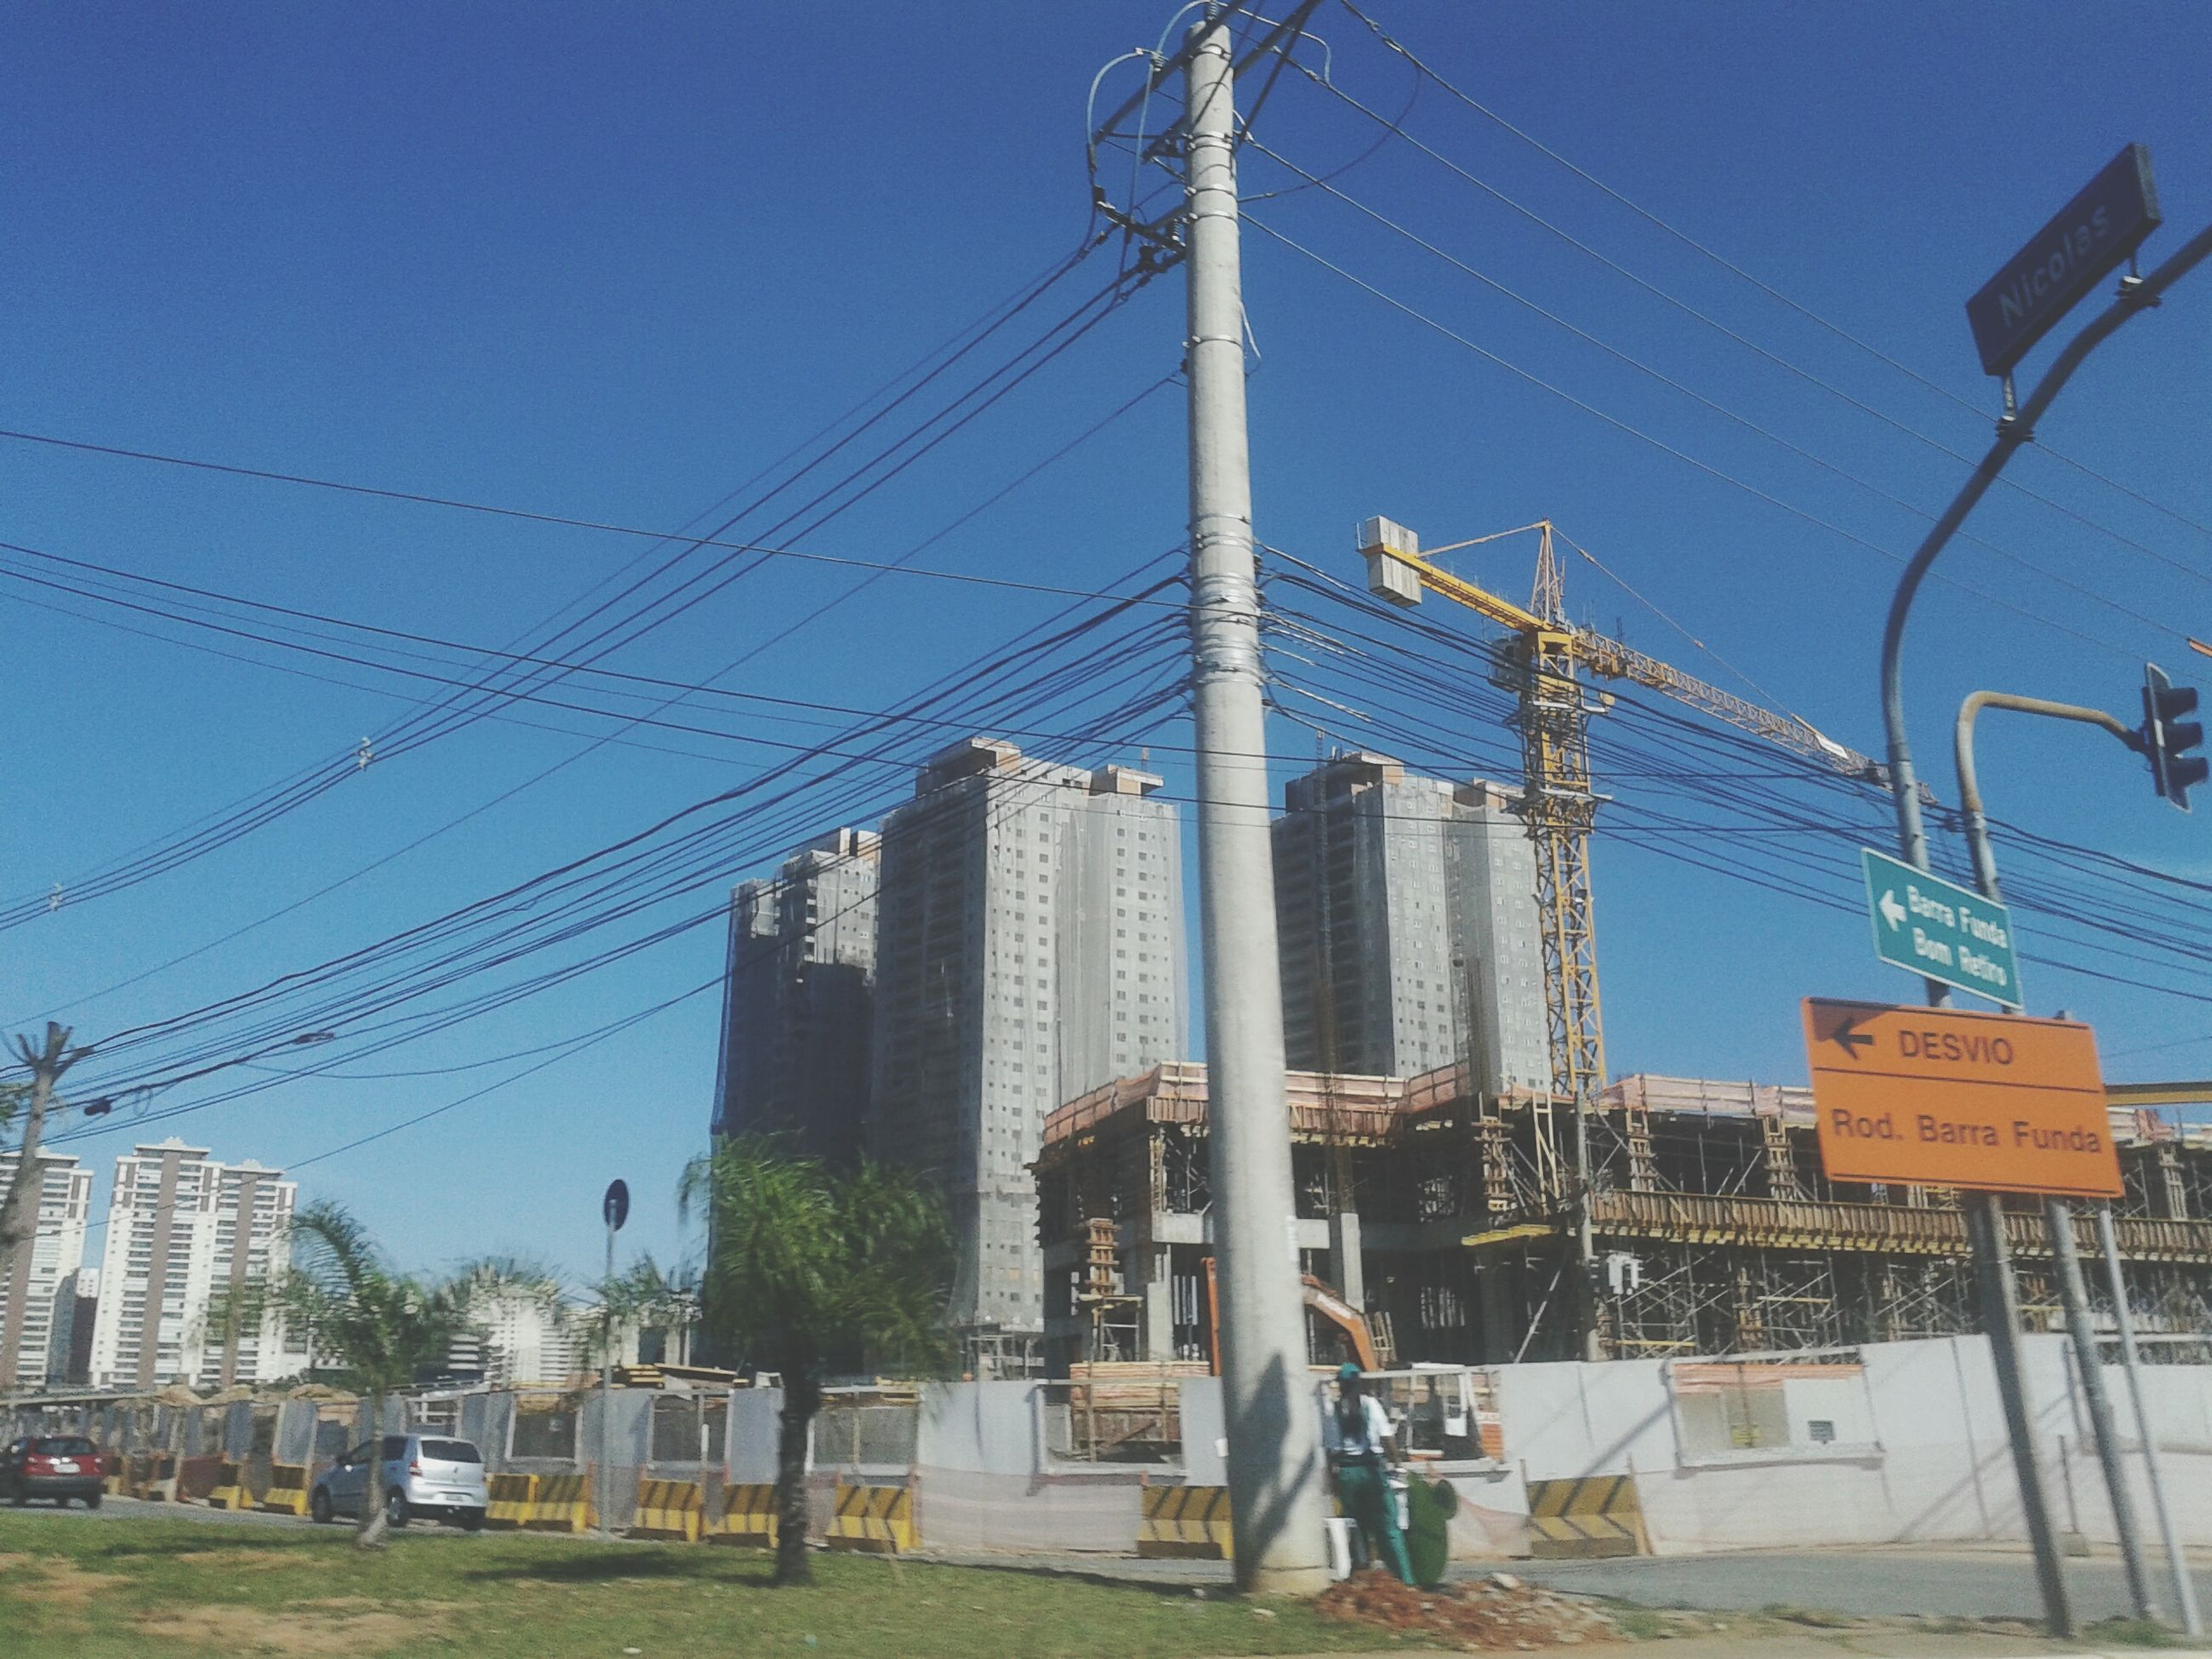 building exterior, built structure, architecture, blue, power line, clear sky, city, electricity pylon, sky, cable, electricity, construction site, sunlight, low angle view, fuel and power generation, power supply, transportation, day, outdoors, development